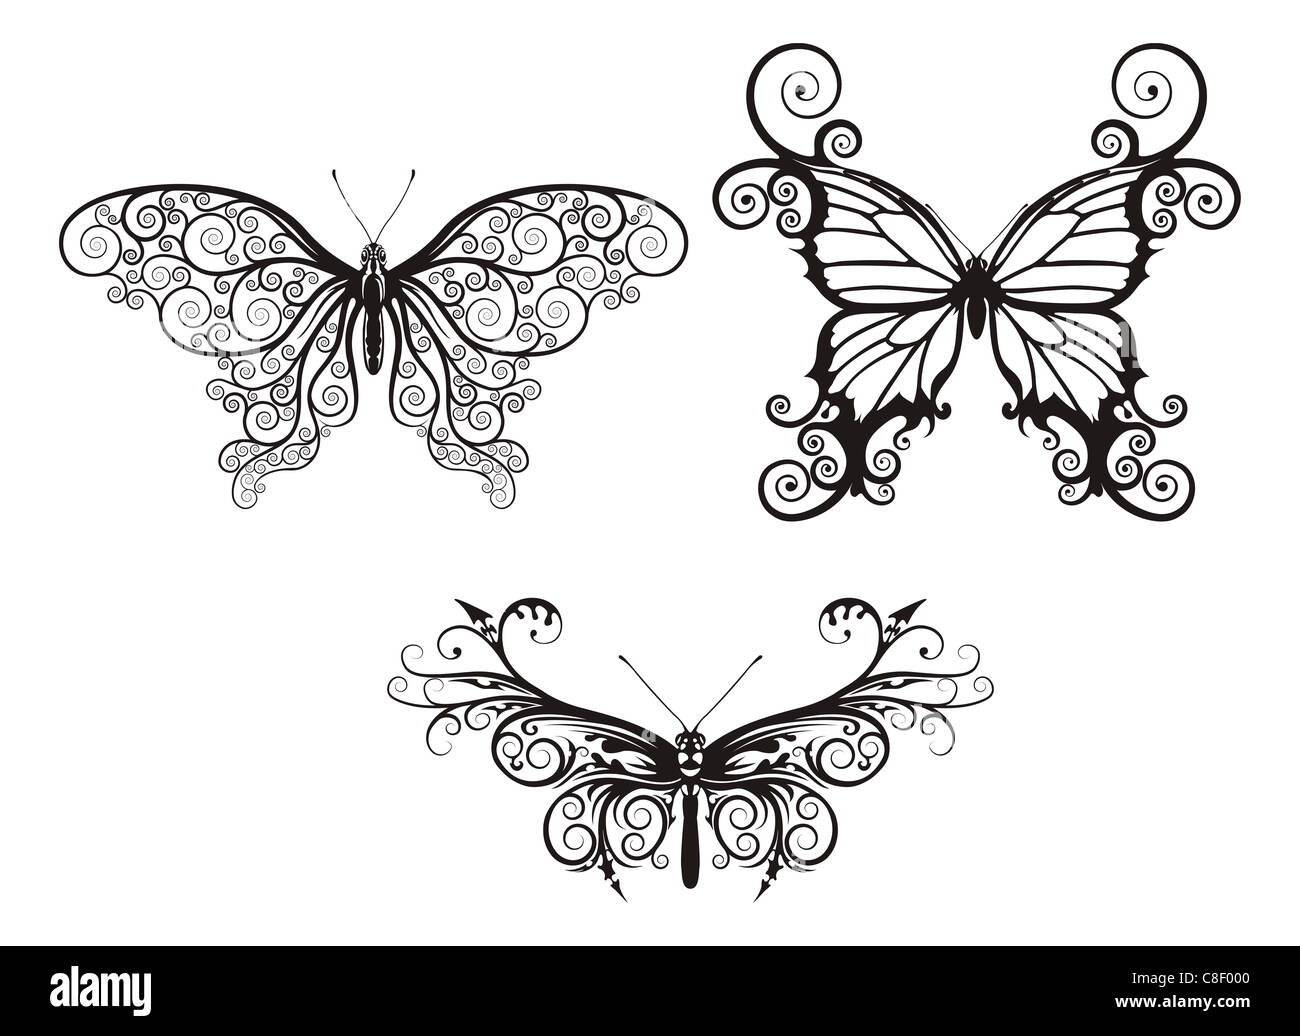 Illustrations of stylised abstract butterflies with patterns and swirls making up wings - Stock Image